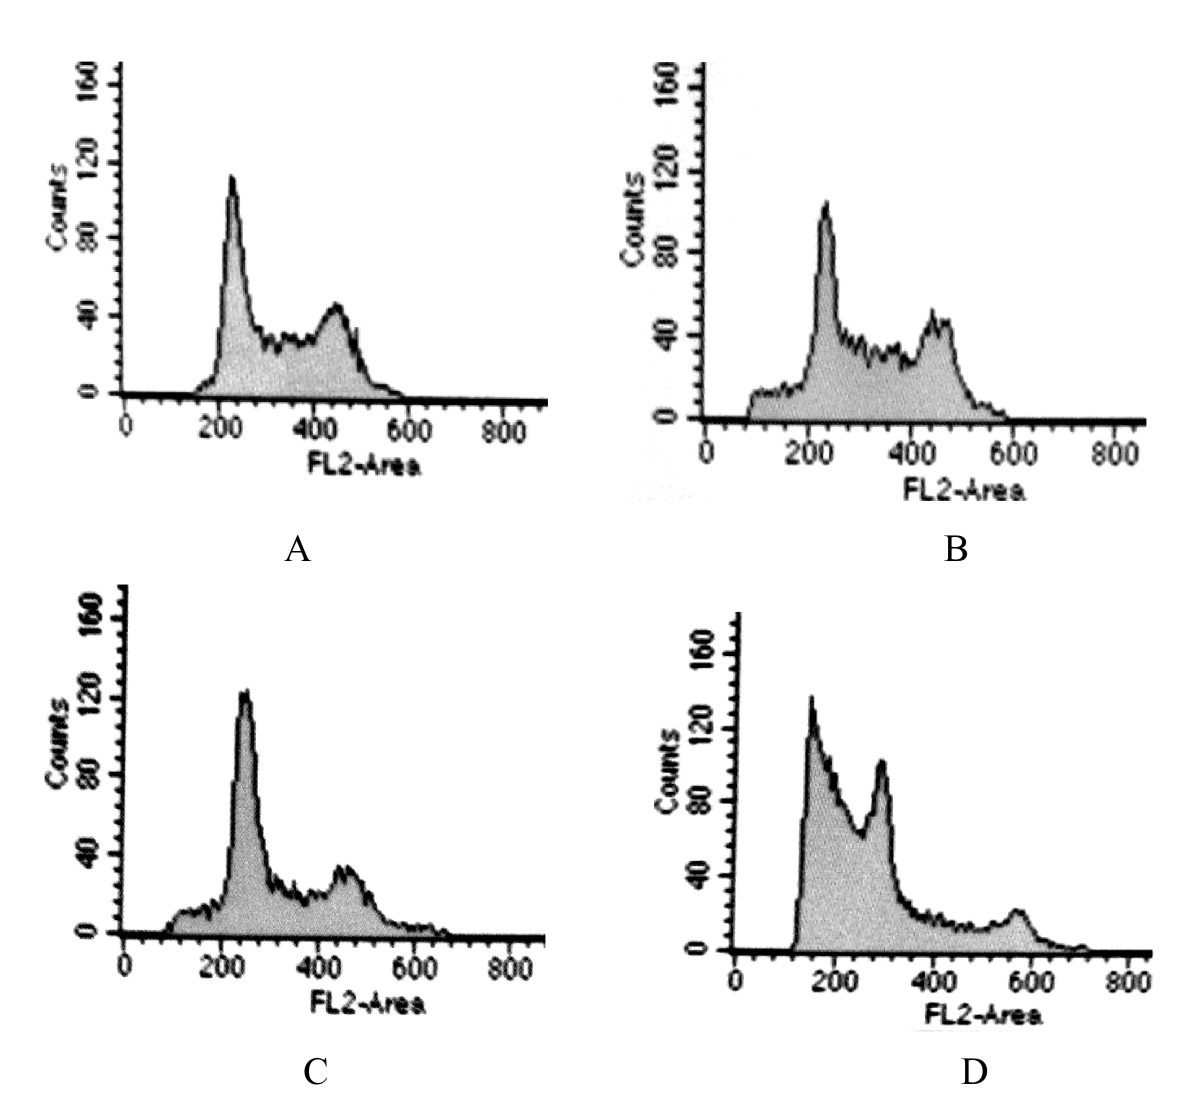 https://static-content.springer.com/image/art%3A10.1186%2F1756-9966-27-87/MediaObjects/13046_2008_Article_86_Fig5_HTML.jpg